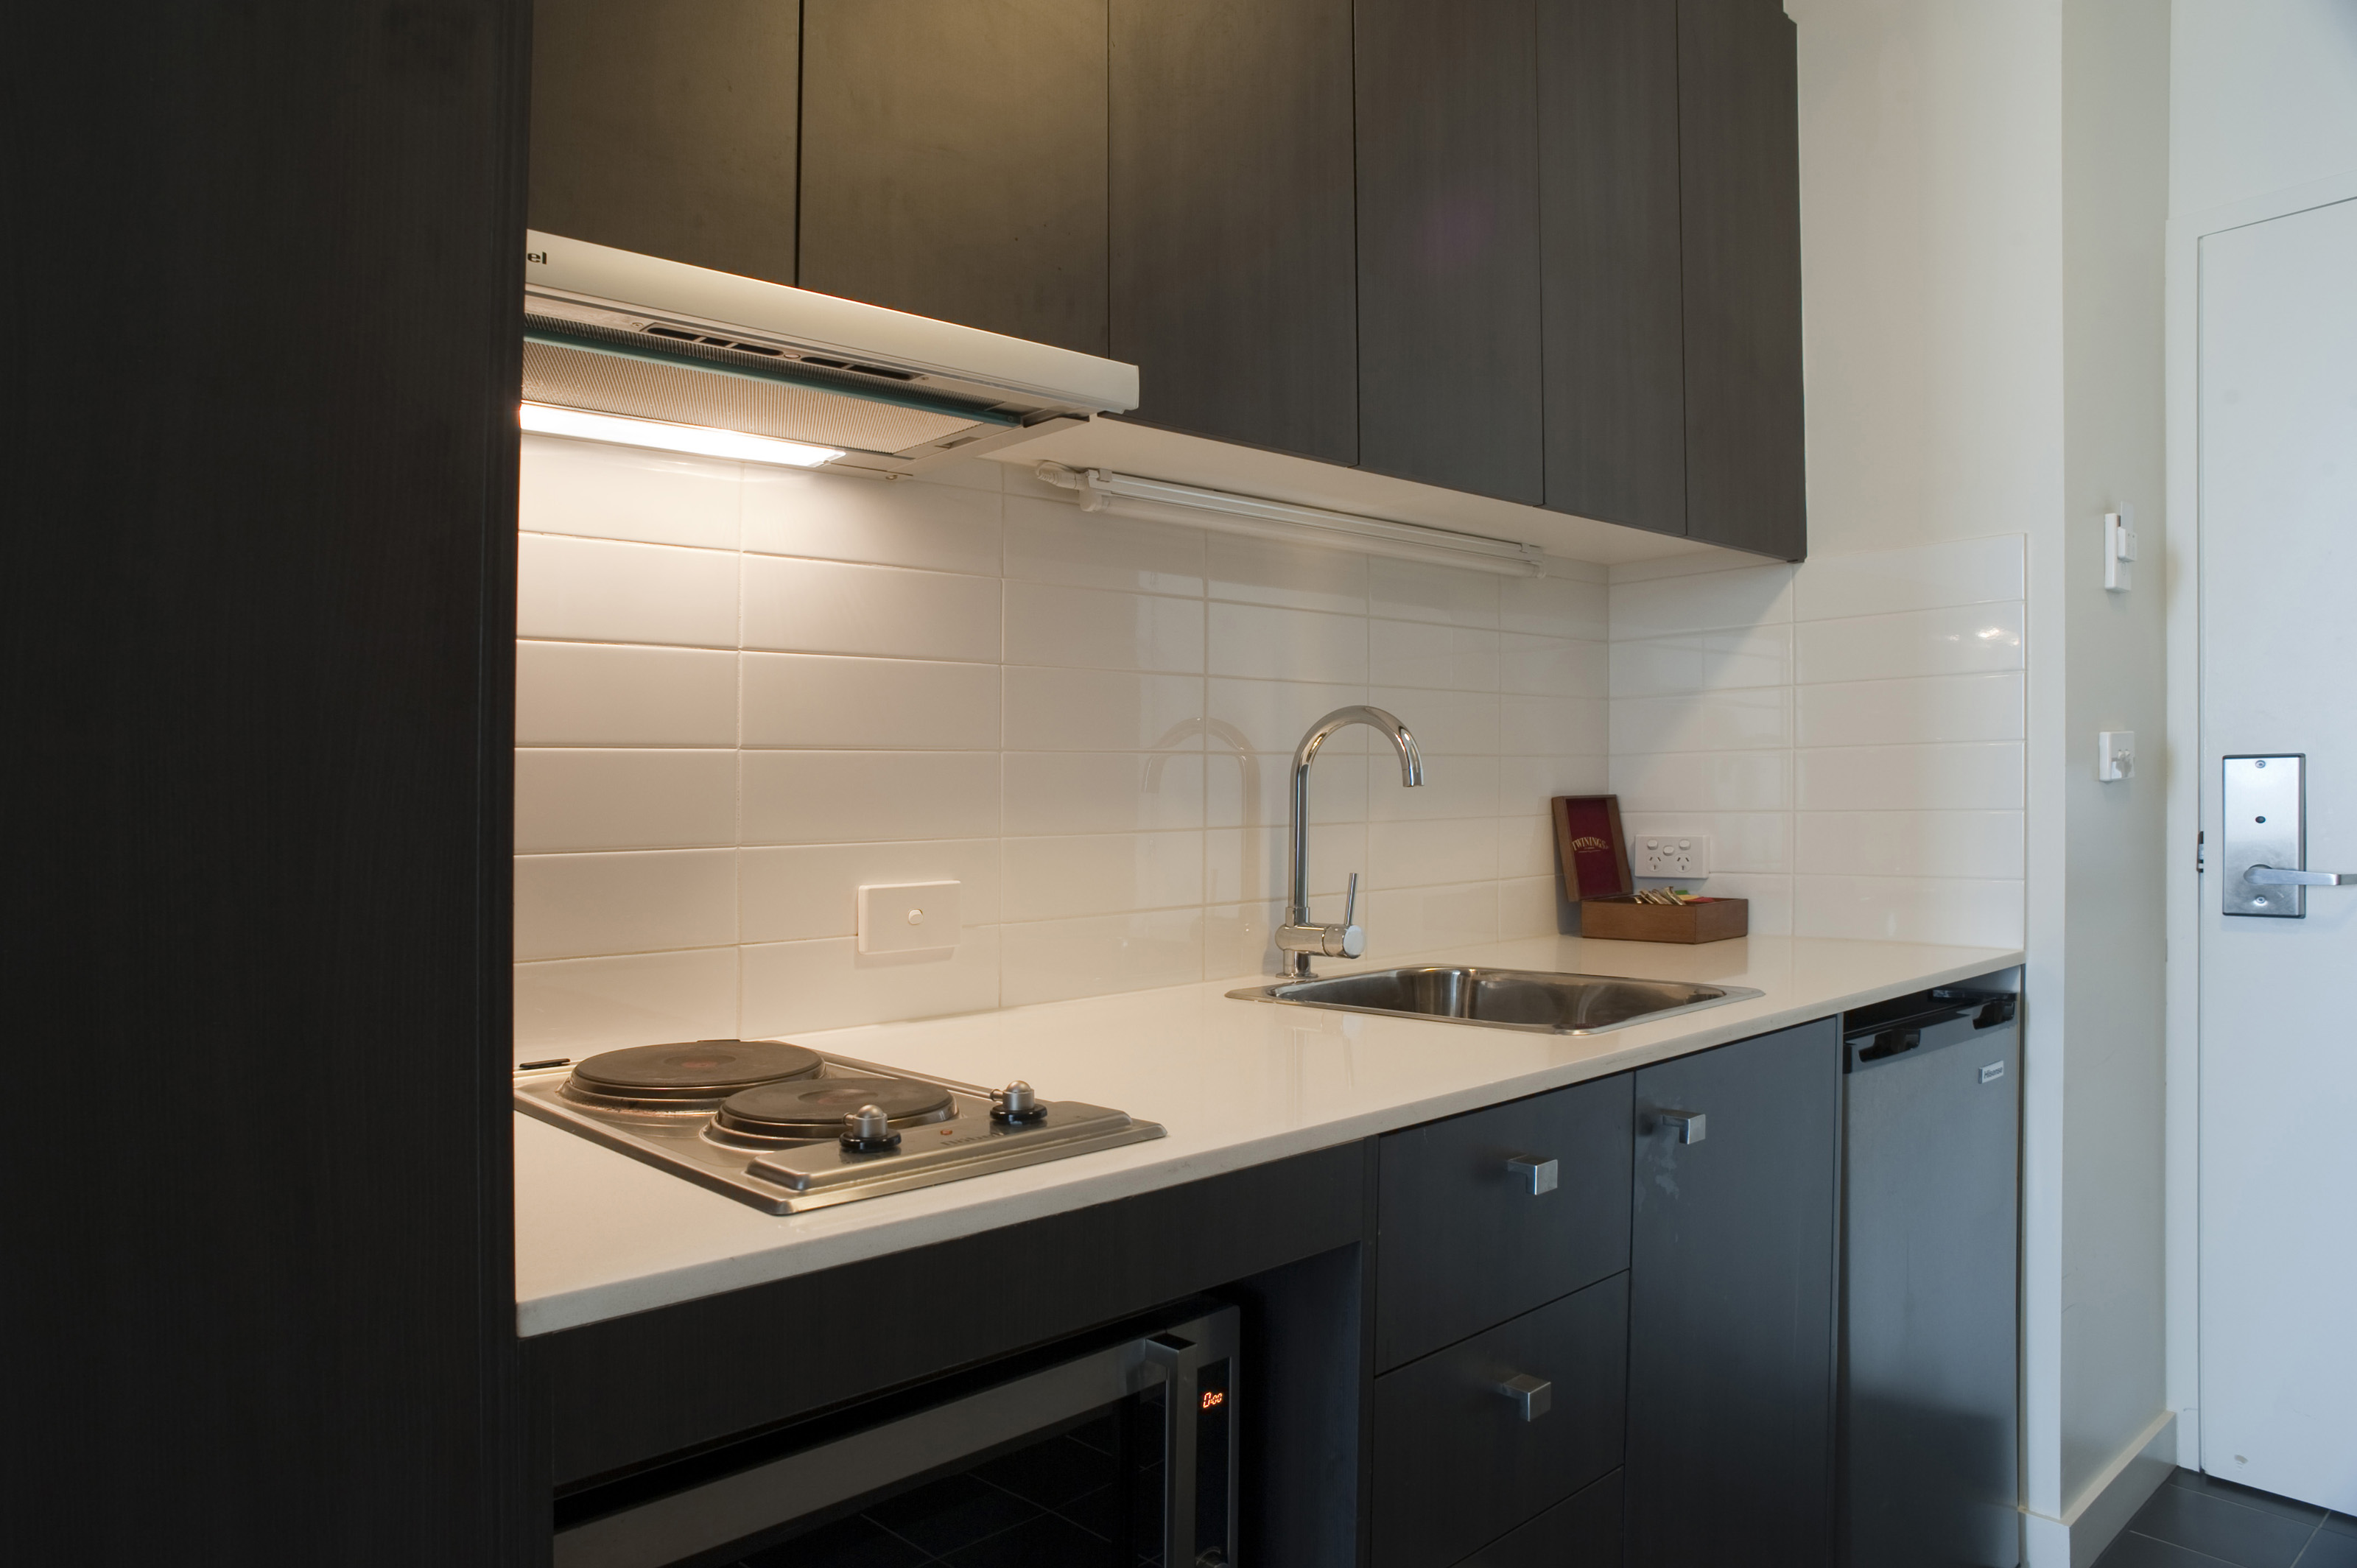 Great Interior of a modern pact kitchen with black cabinetry and a white tiled splashback above a